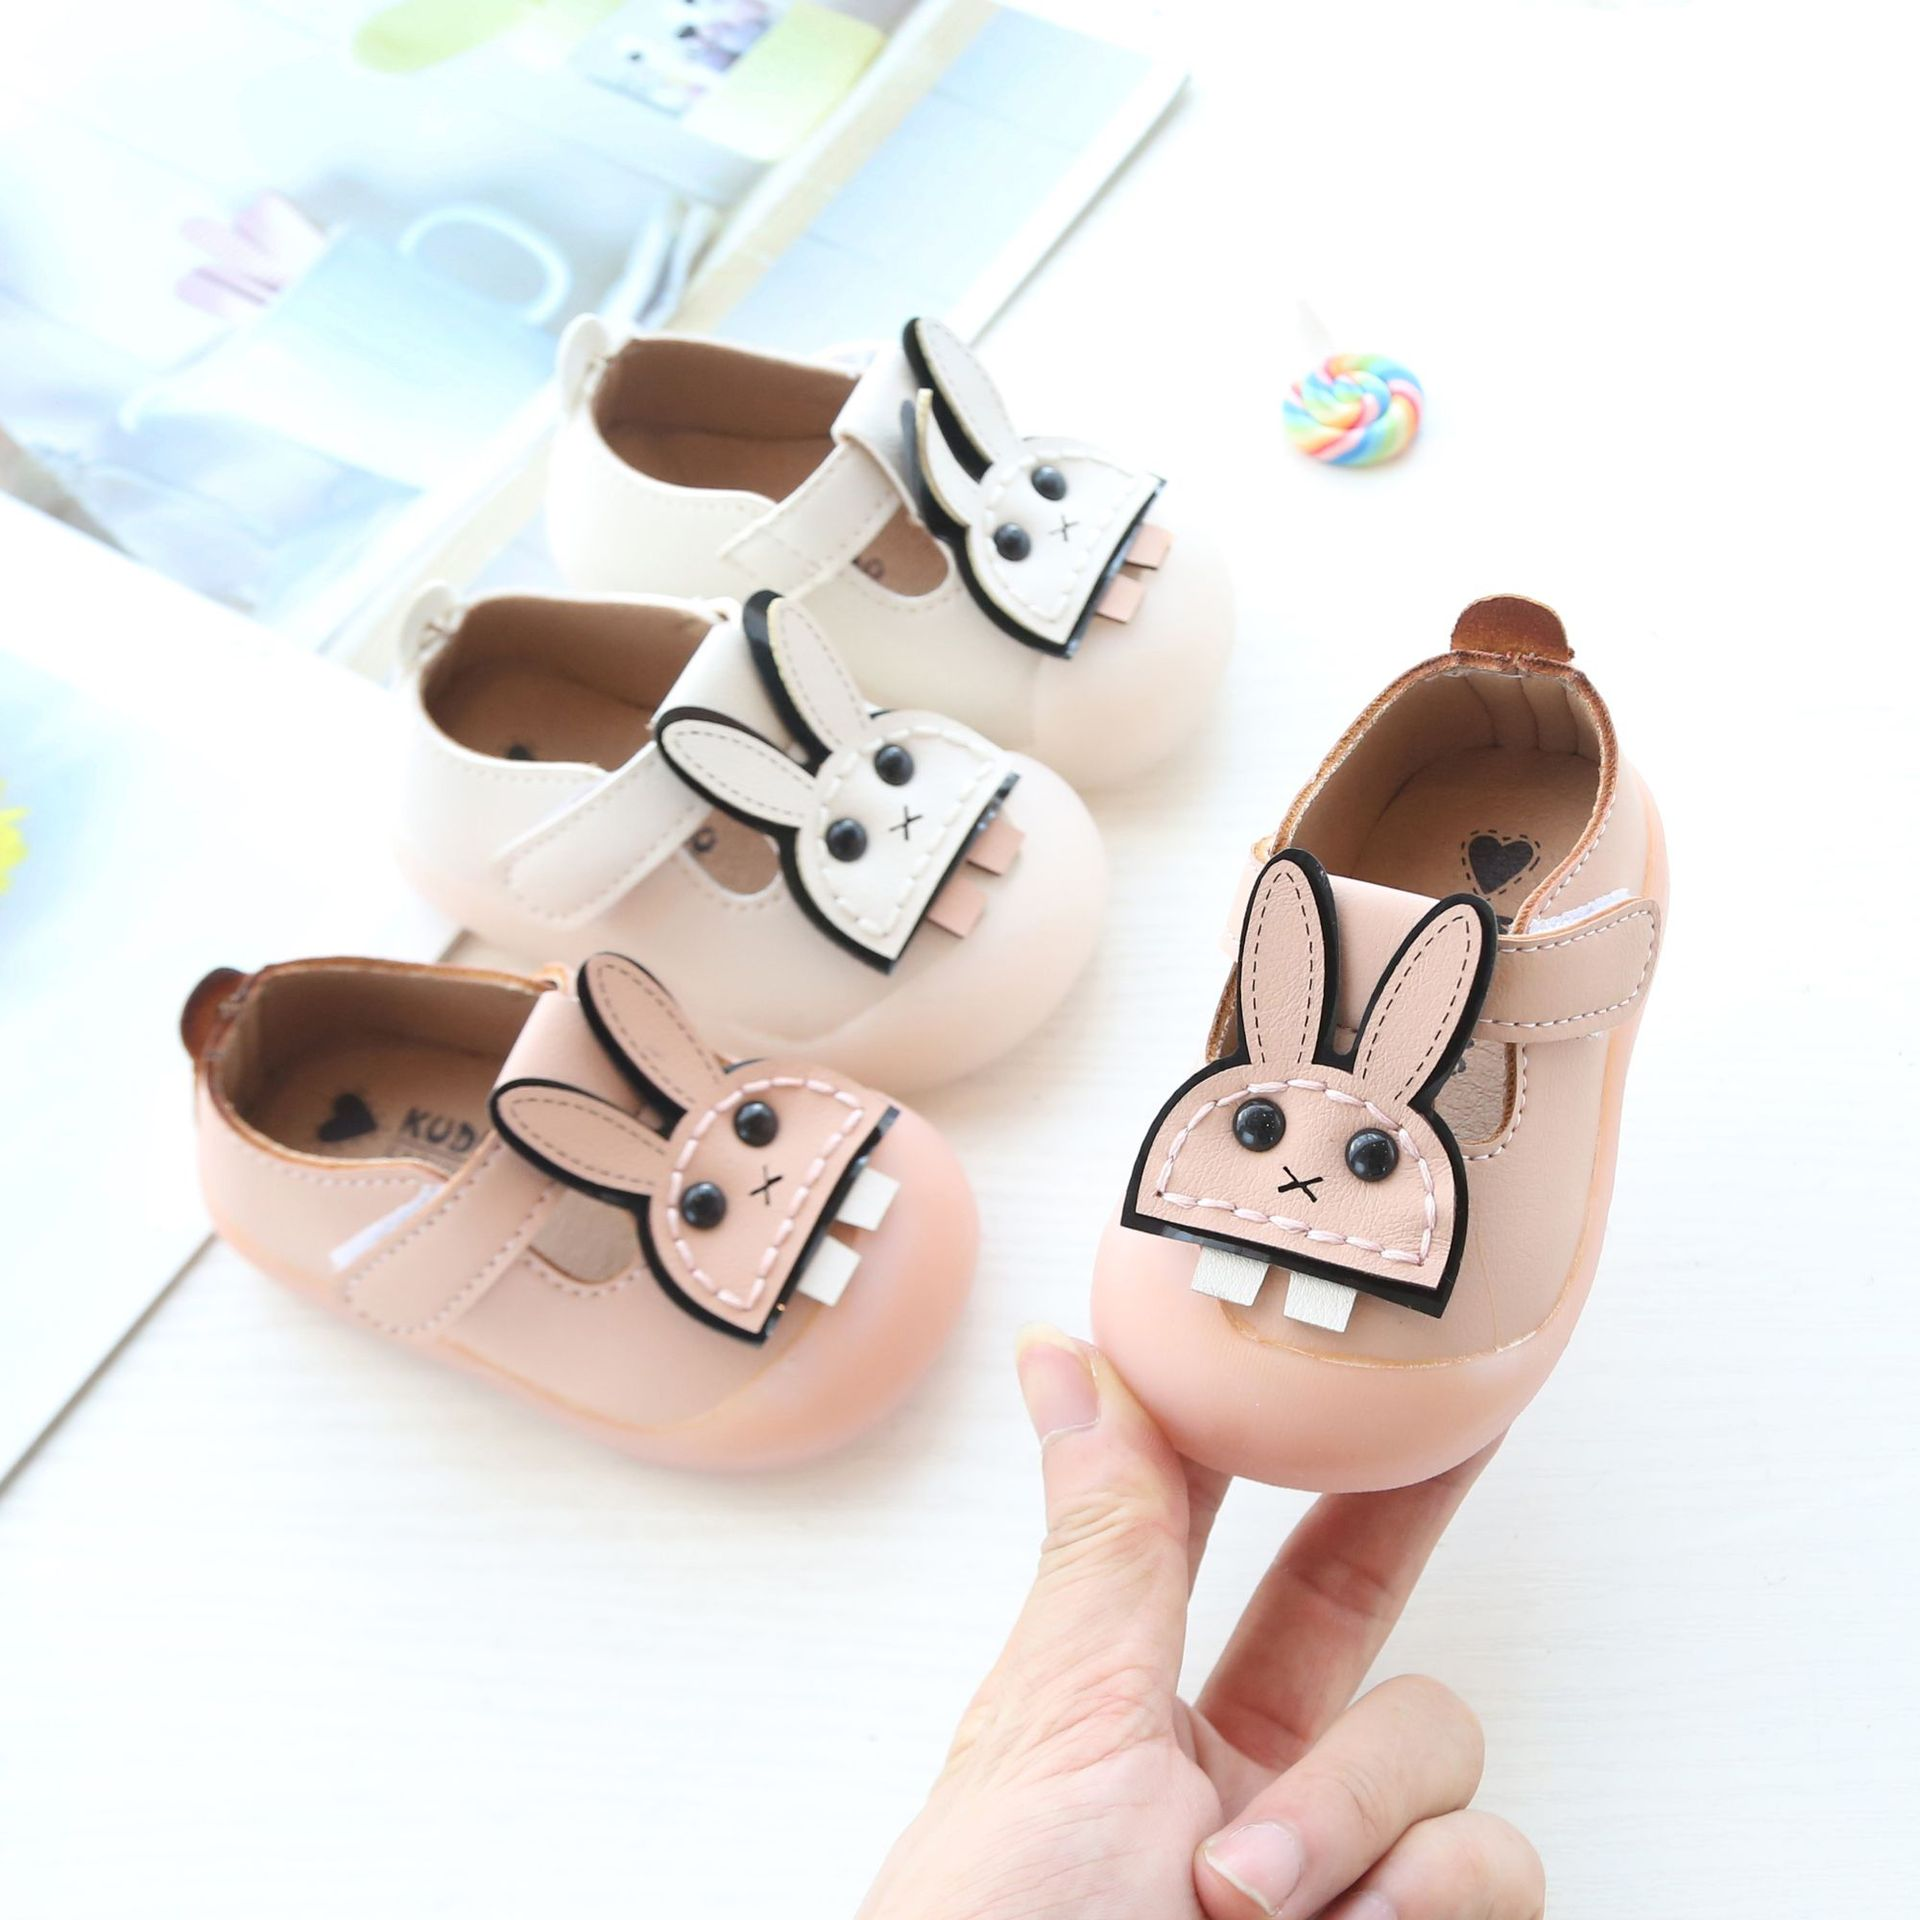 Autumn New Children's Shoes  2 Years Old Cartoon Cute Shoes Baby Soft Bottom Slip Single Shoes  Leather Shoes Baby|First Walkers| |  - title=